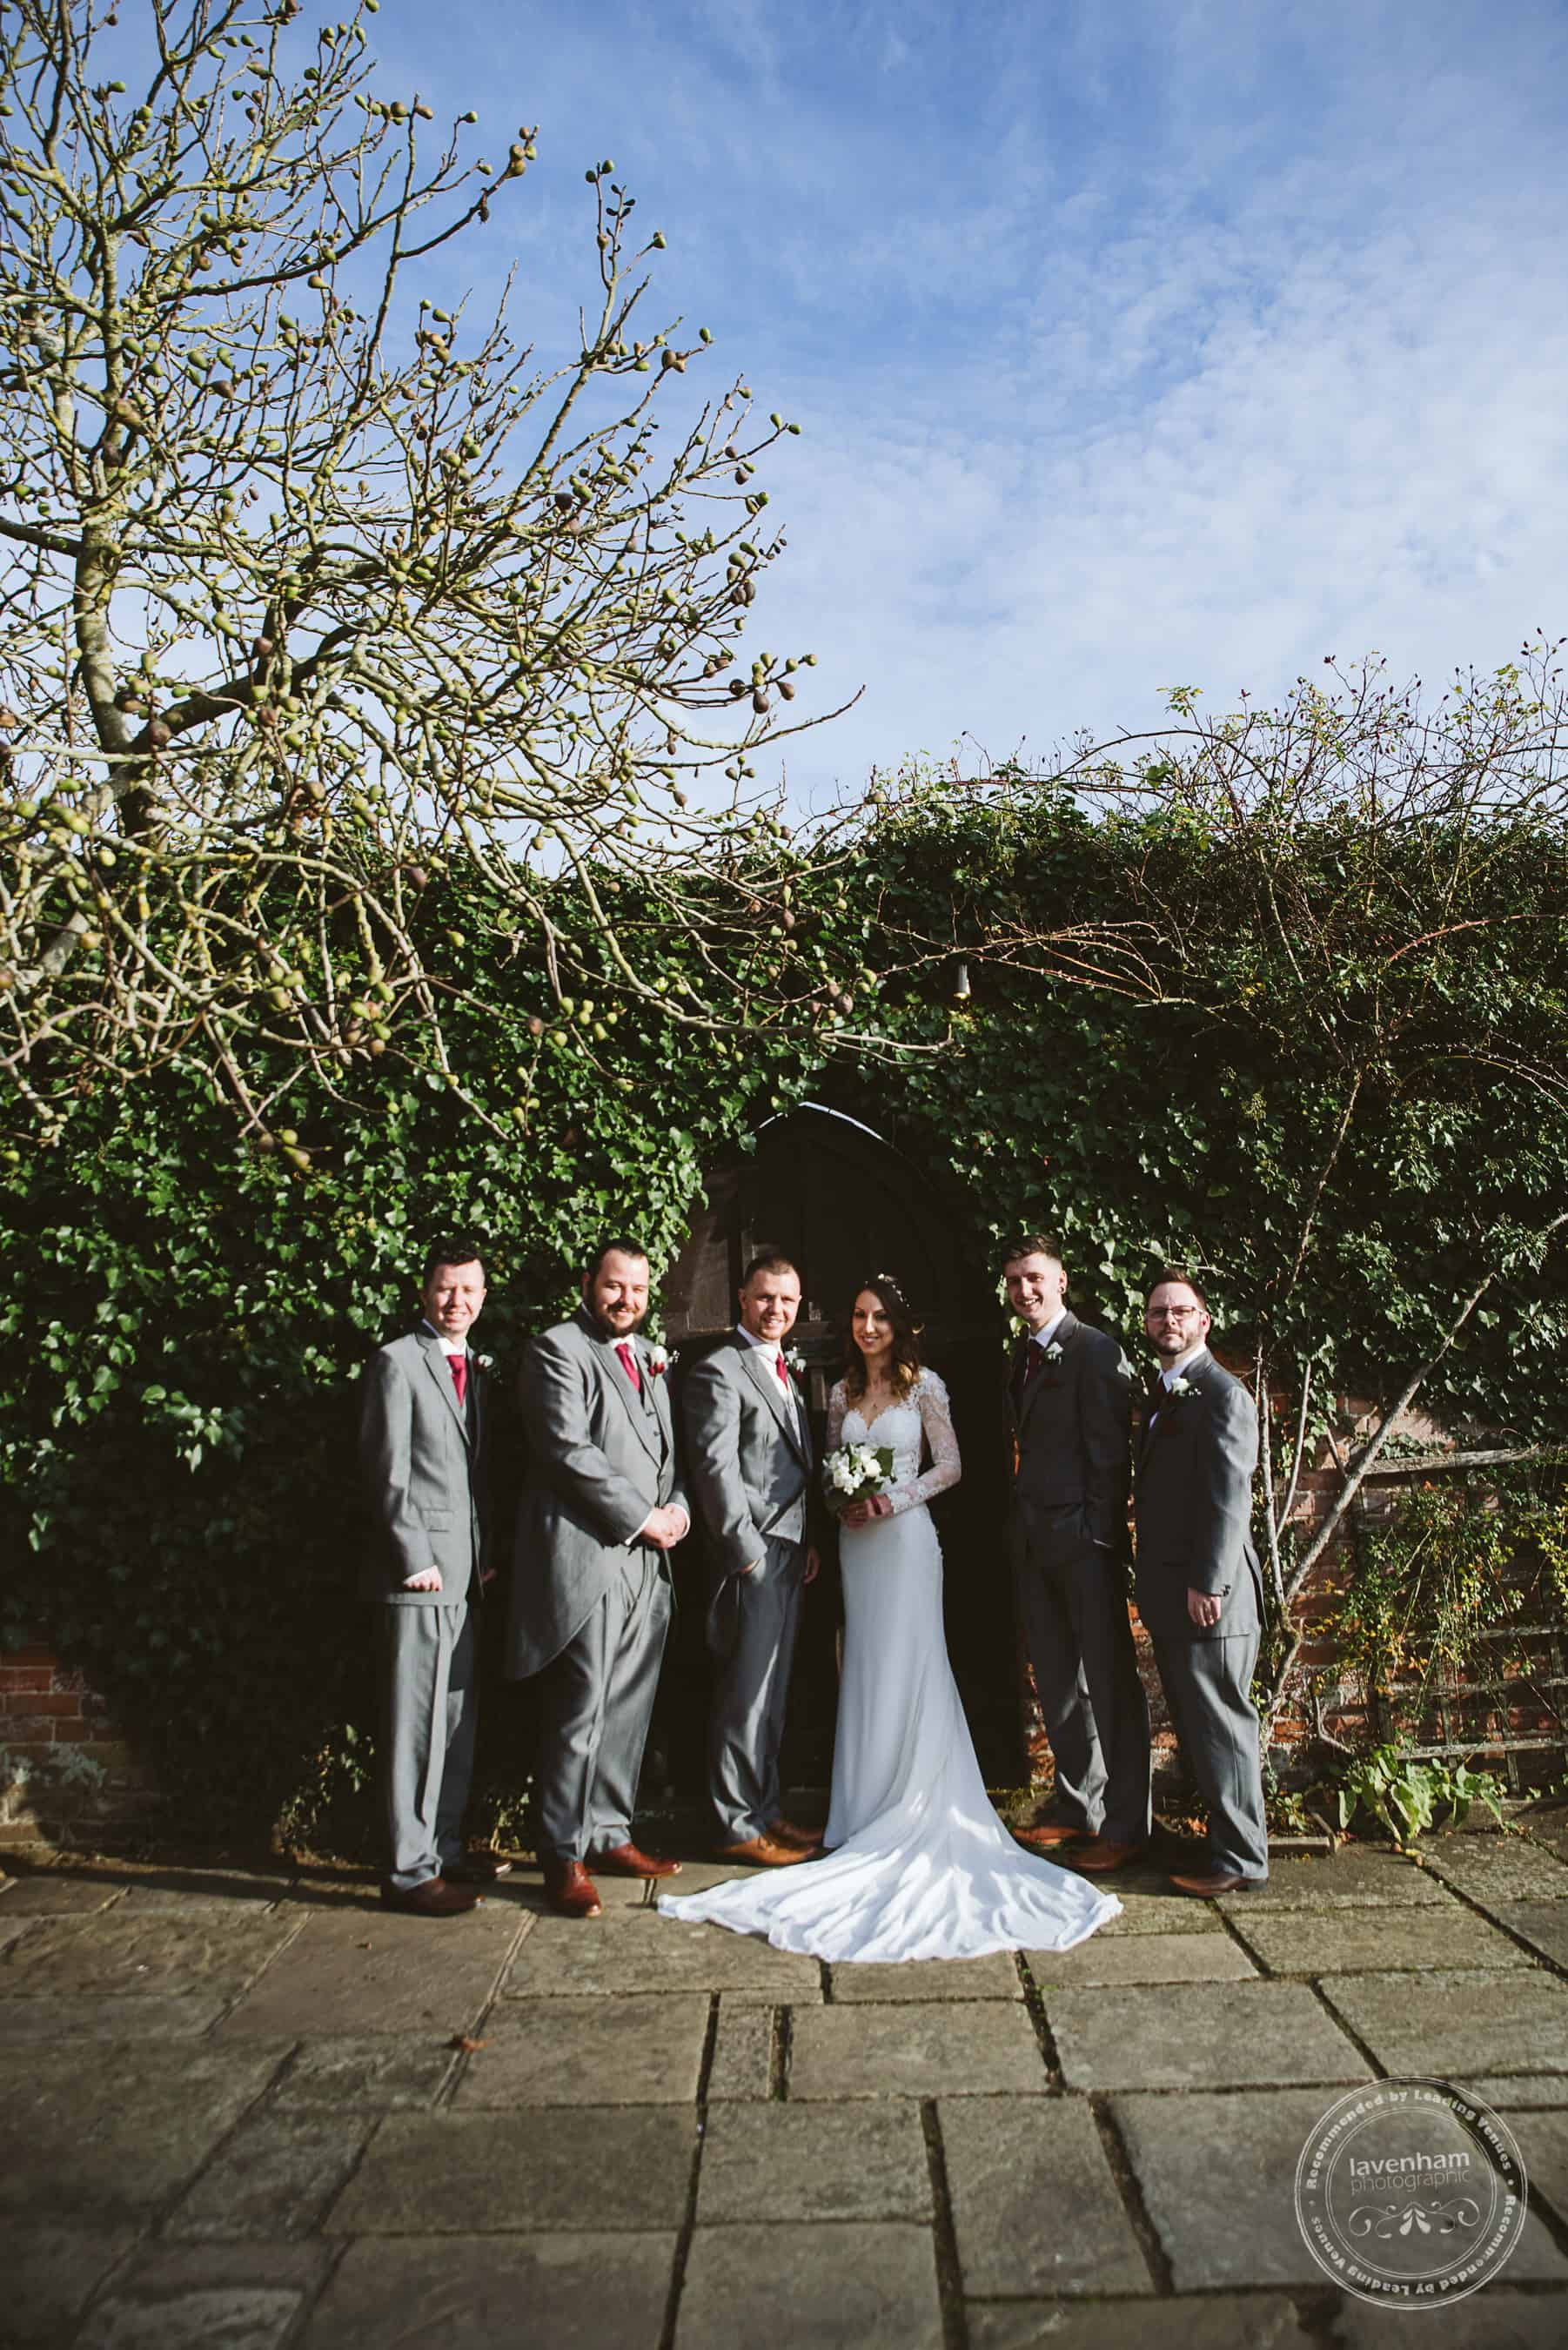 041118 Woodhall Manor Wedding Photography by Lavenham Photographic 059